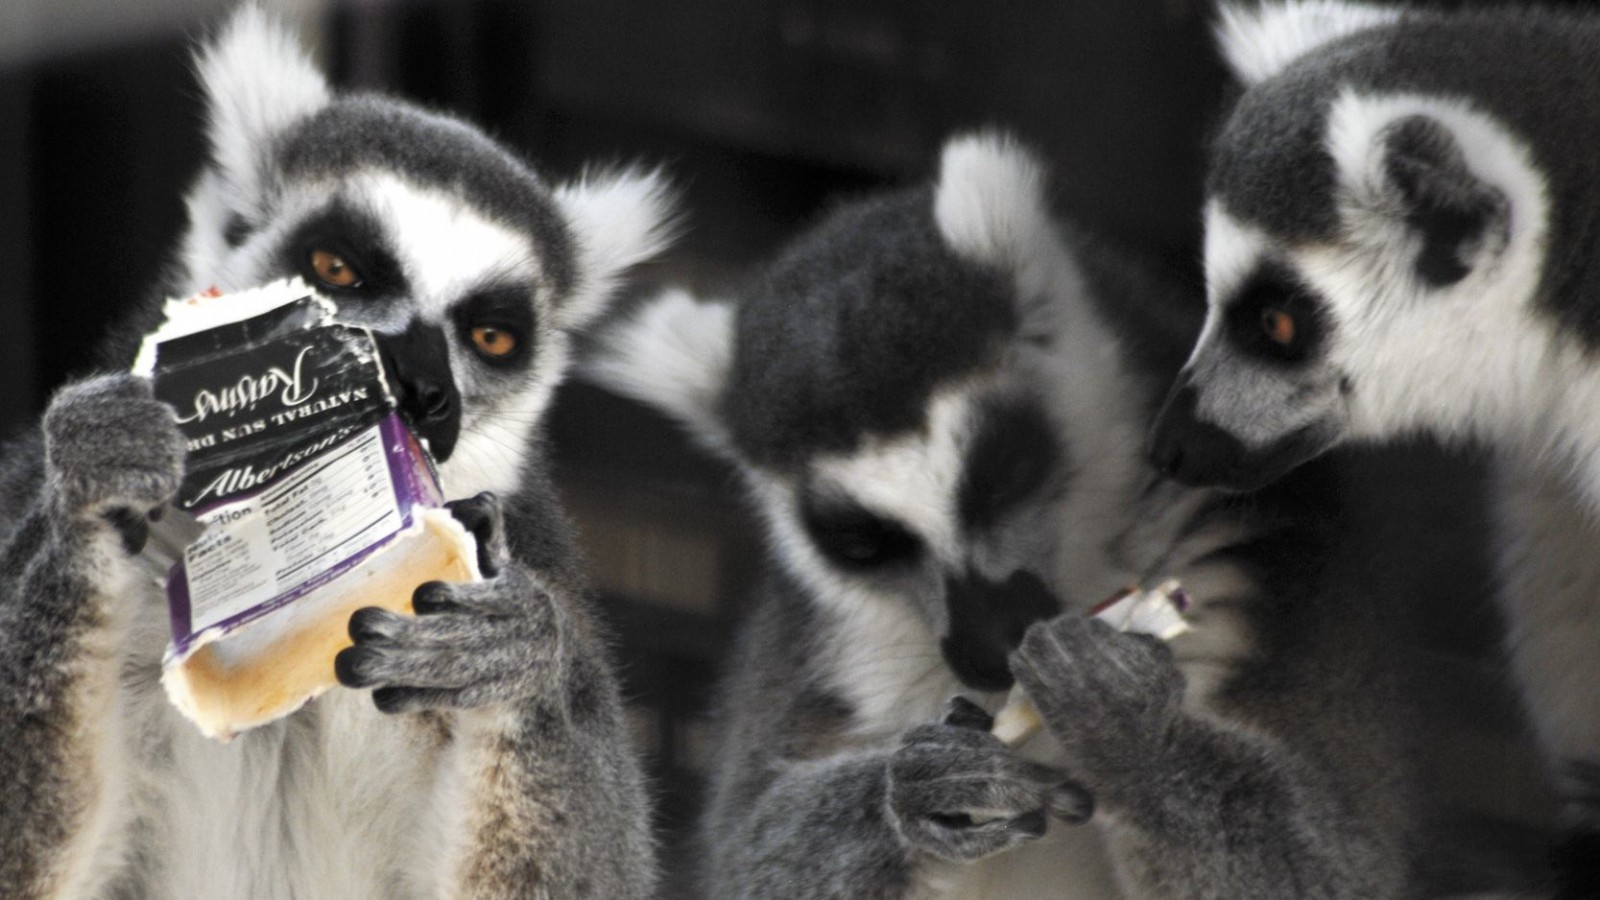 Louis, Hedley and Dorothy, the Ring-tailed Lemur family at the Spring River Zoo in Roswell, New Mexico, examine and nibble upon an old cardboard box that had blown into their cage Wednesday, March 4, 2009 during gusty winds. According to zoo director Elaine Mayfield the Lemur cage is cleaned out every morning to clear such debris. (AP Photo/Roswell Daily Record  Mark Wilson)